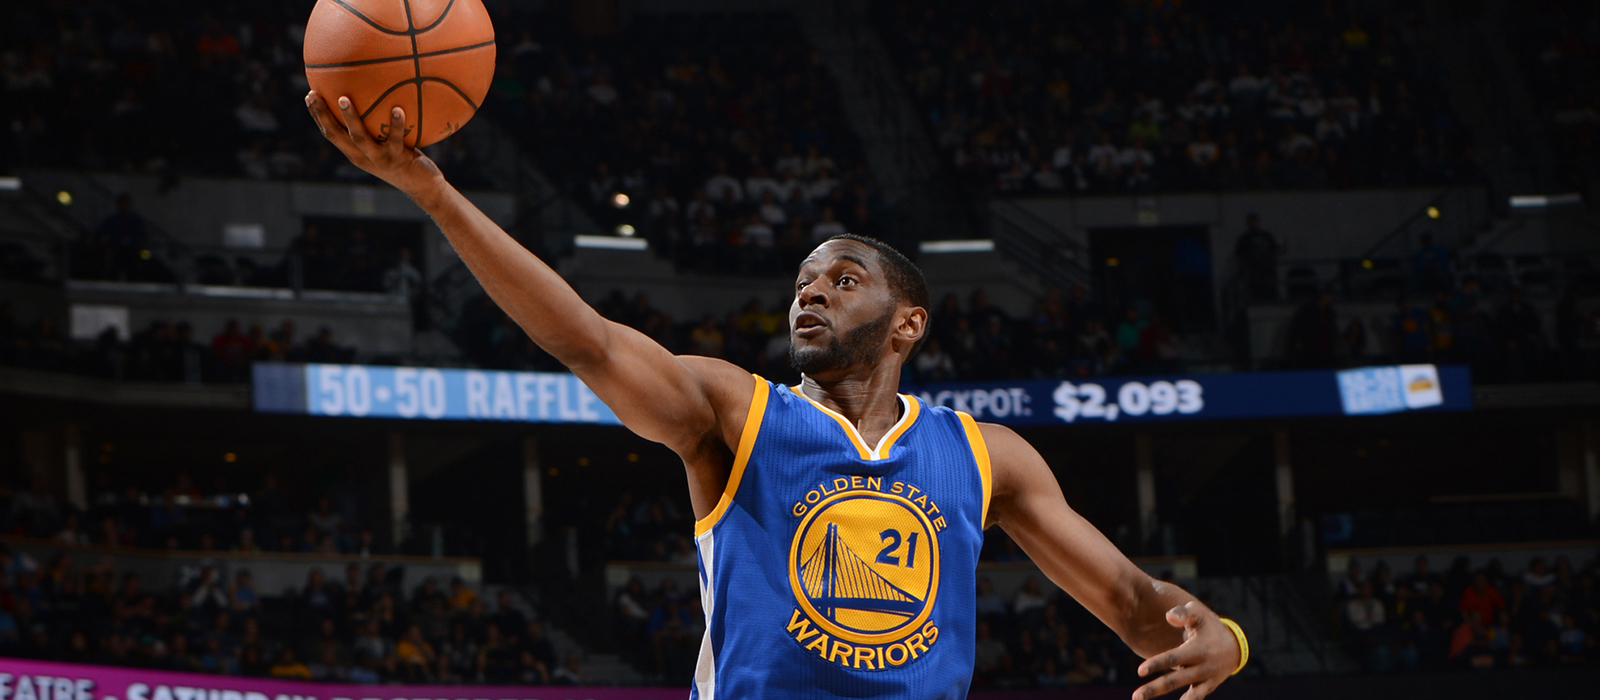 Former Men's Basketball All-American Ian Clark to play in a second consecutive NBA Finals